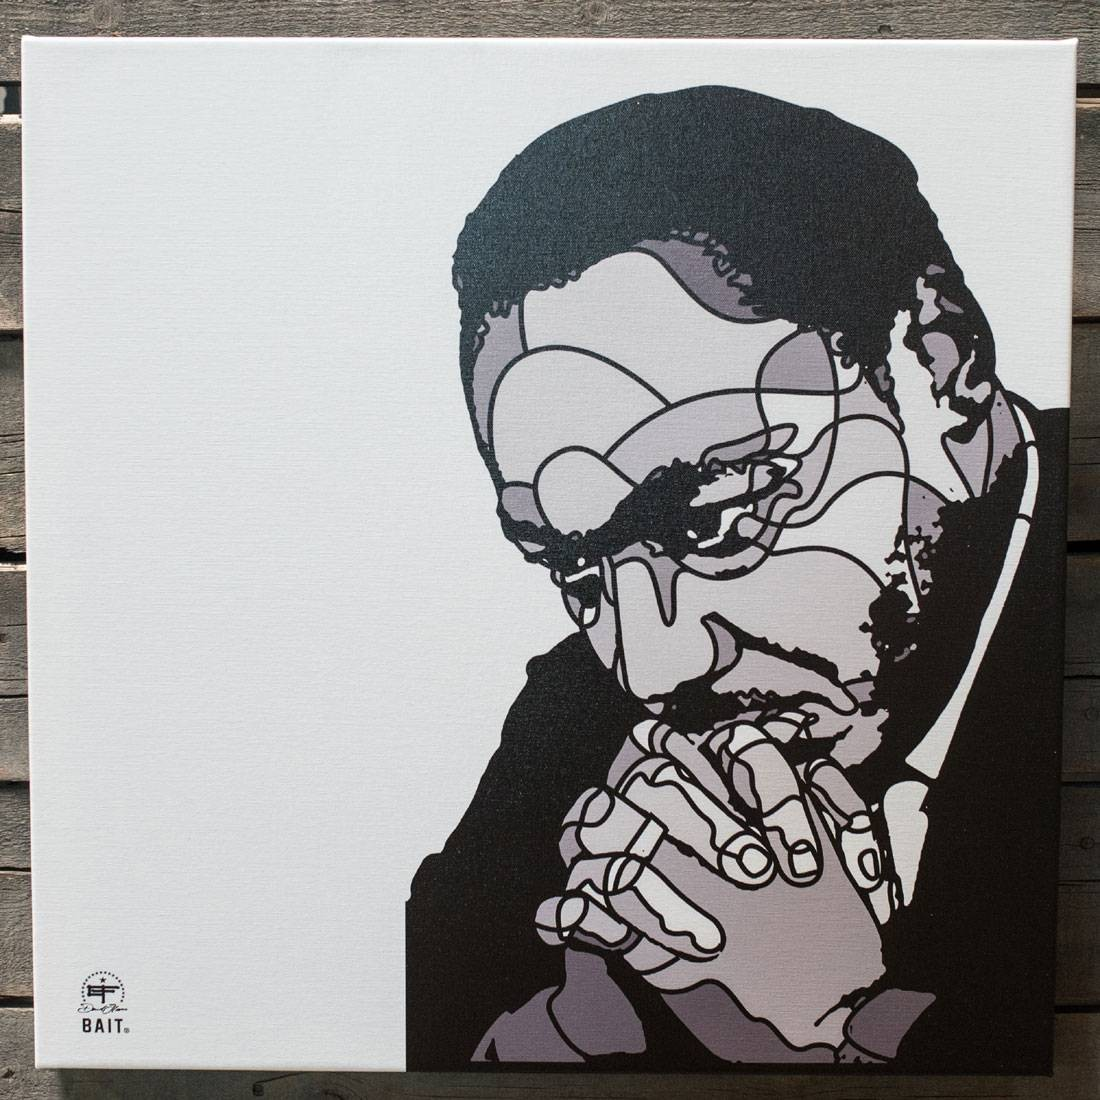 BAIT x David Flores 48 Inch Canvas - MLK (gray)